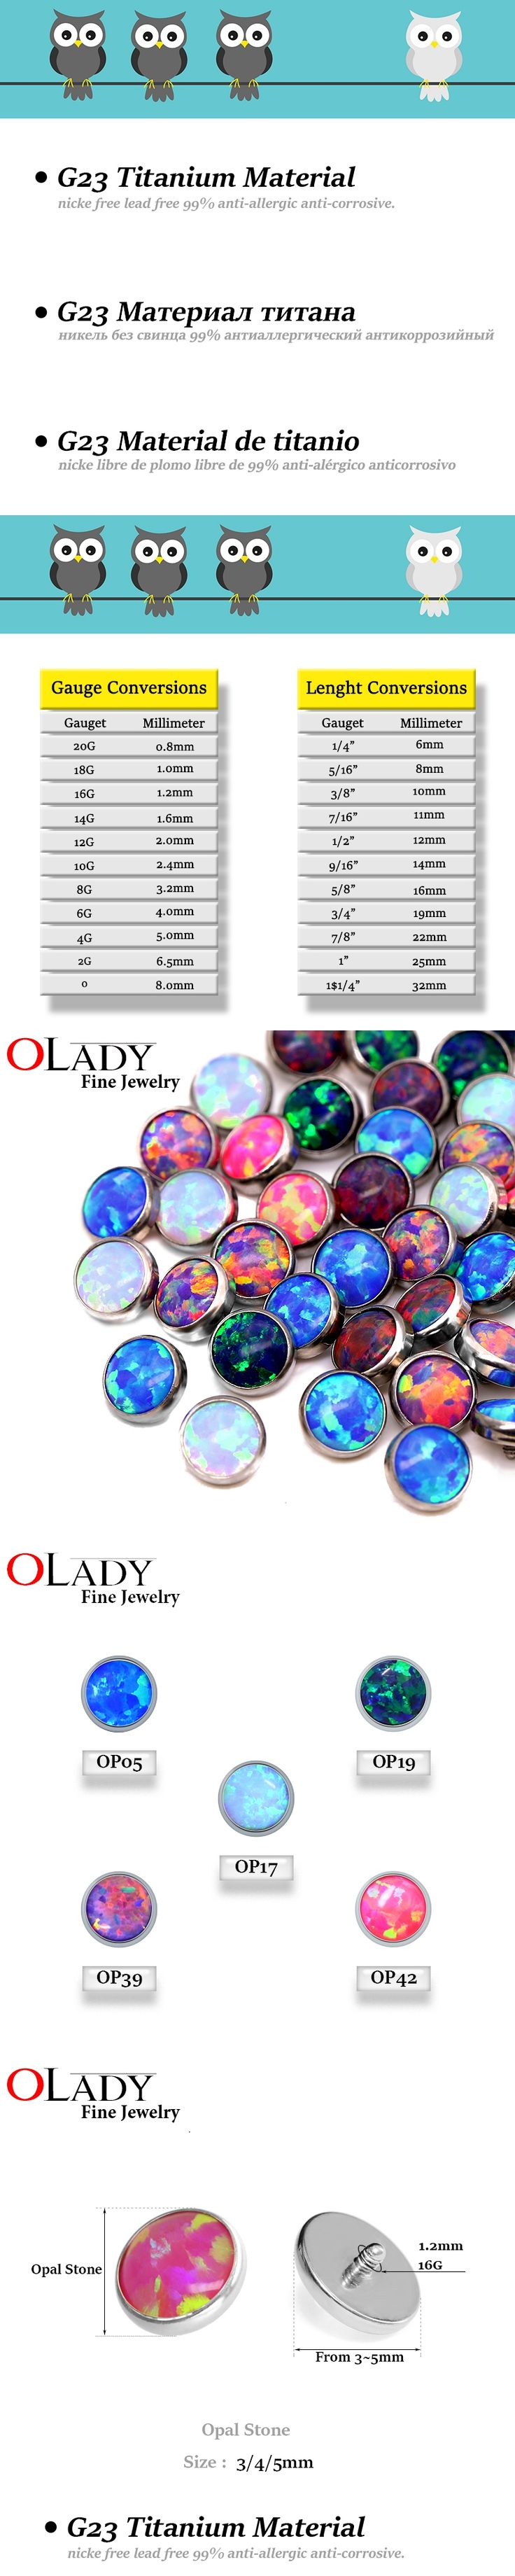 Micro Skin Diver Dermal 100% Titanium Piercing Opal Stone Top dermal Anchor piercing body jewelry attachments-jewelled disc